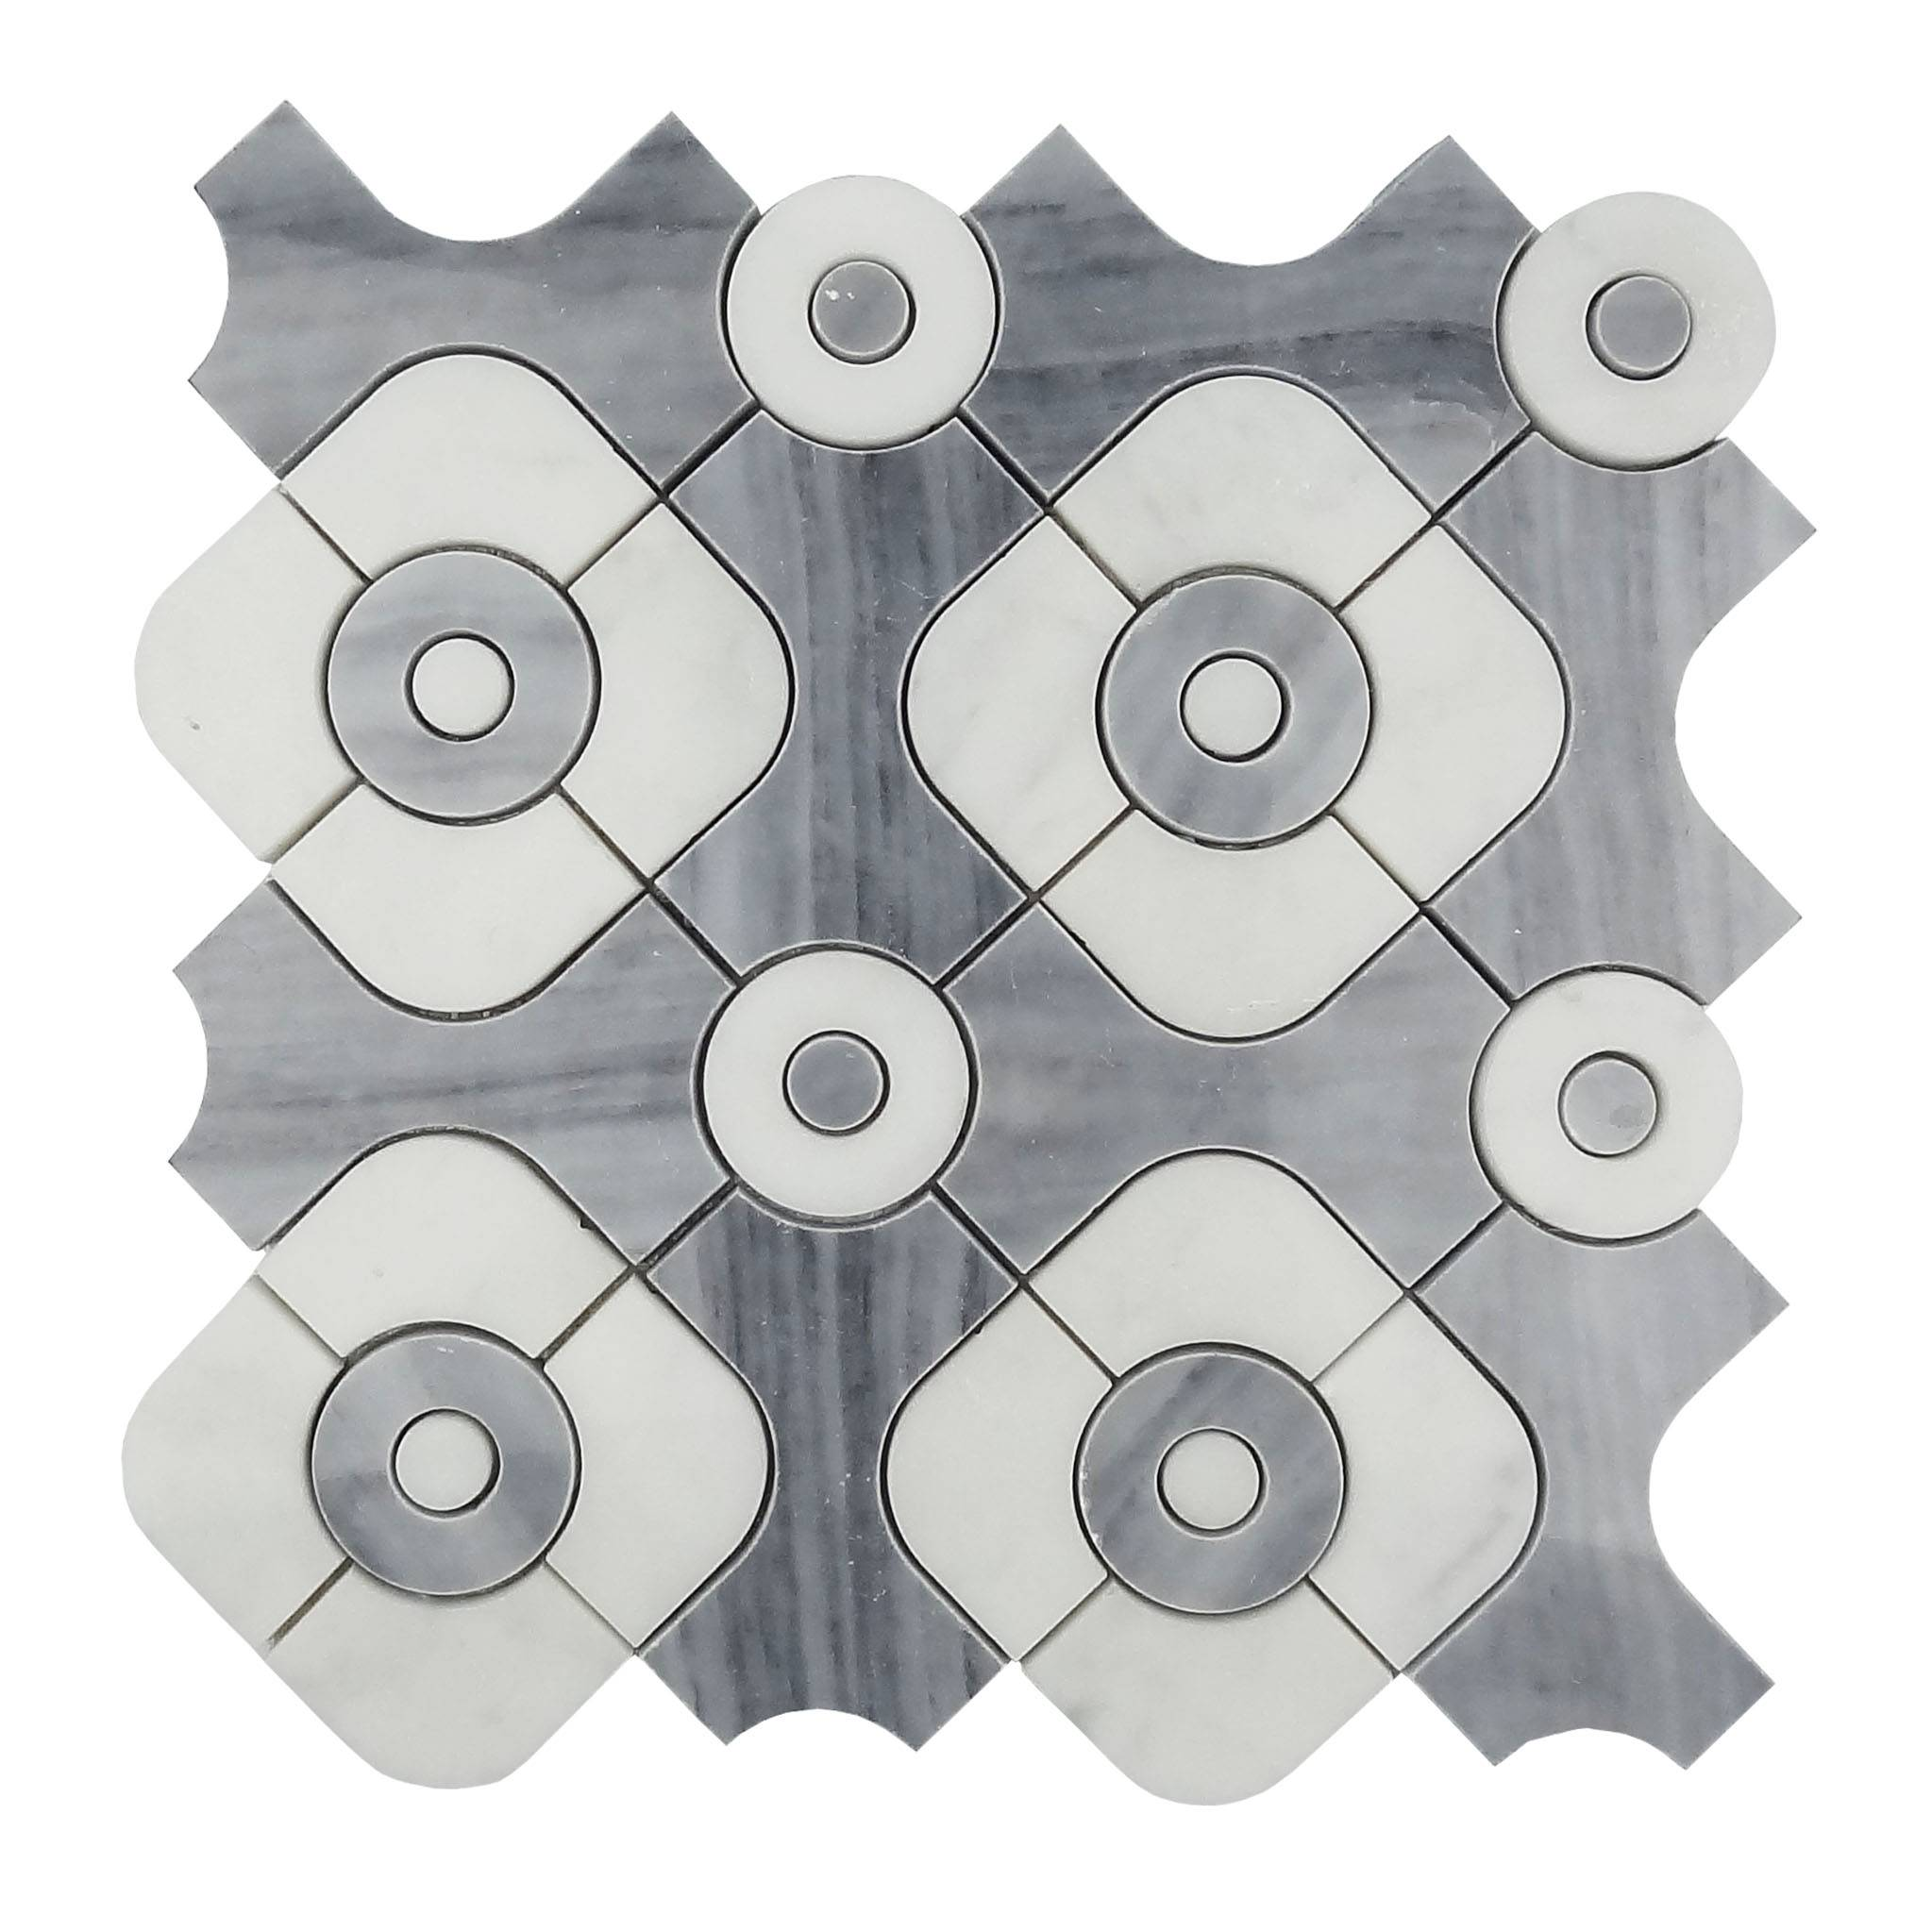 Artistical pattern grey and white waterjet mosaic tile for floor Featured Image